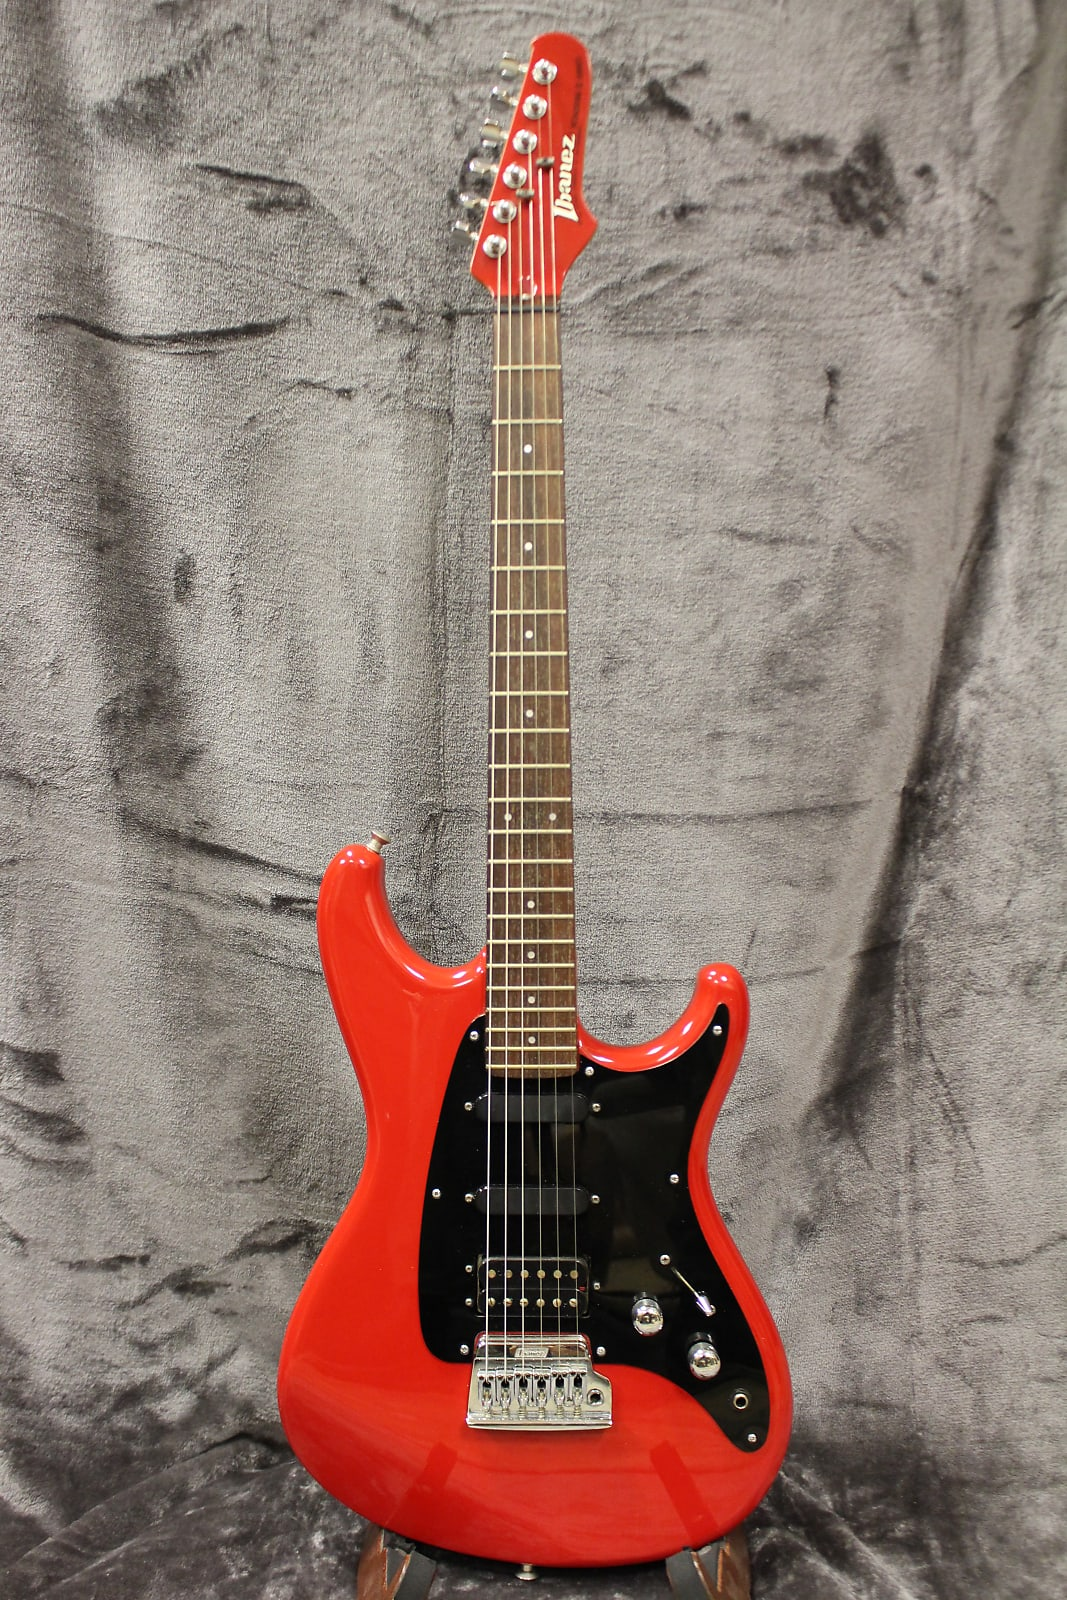 Ibanez Roadstar II RG140 Red 1986